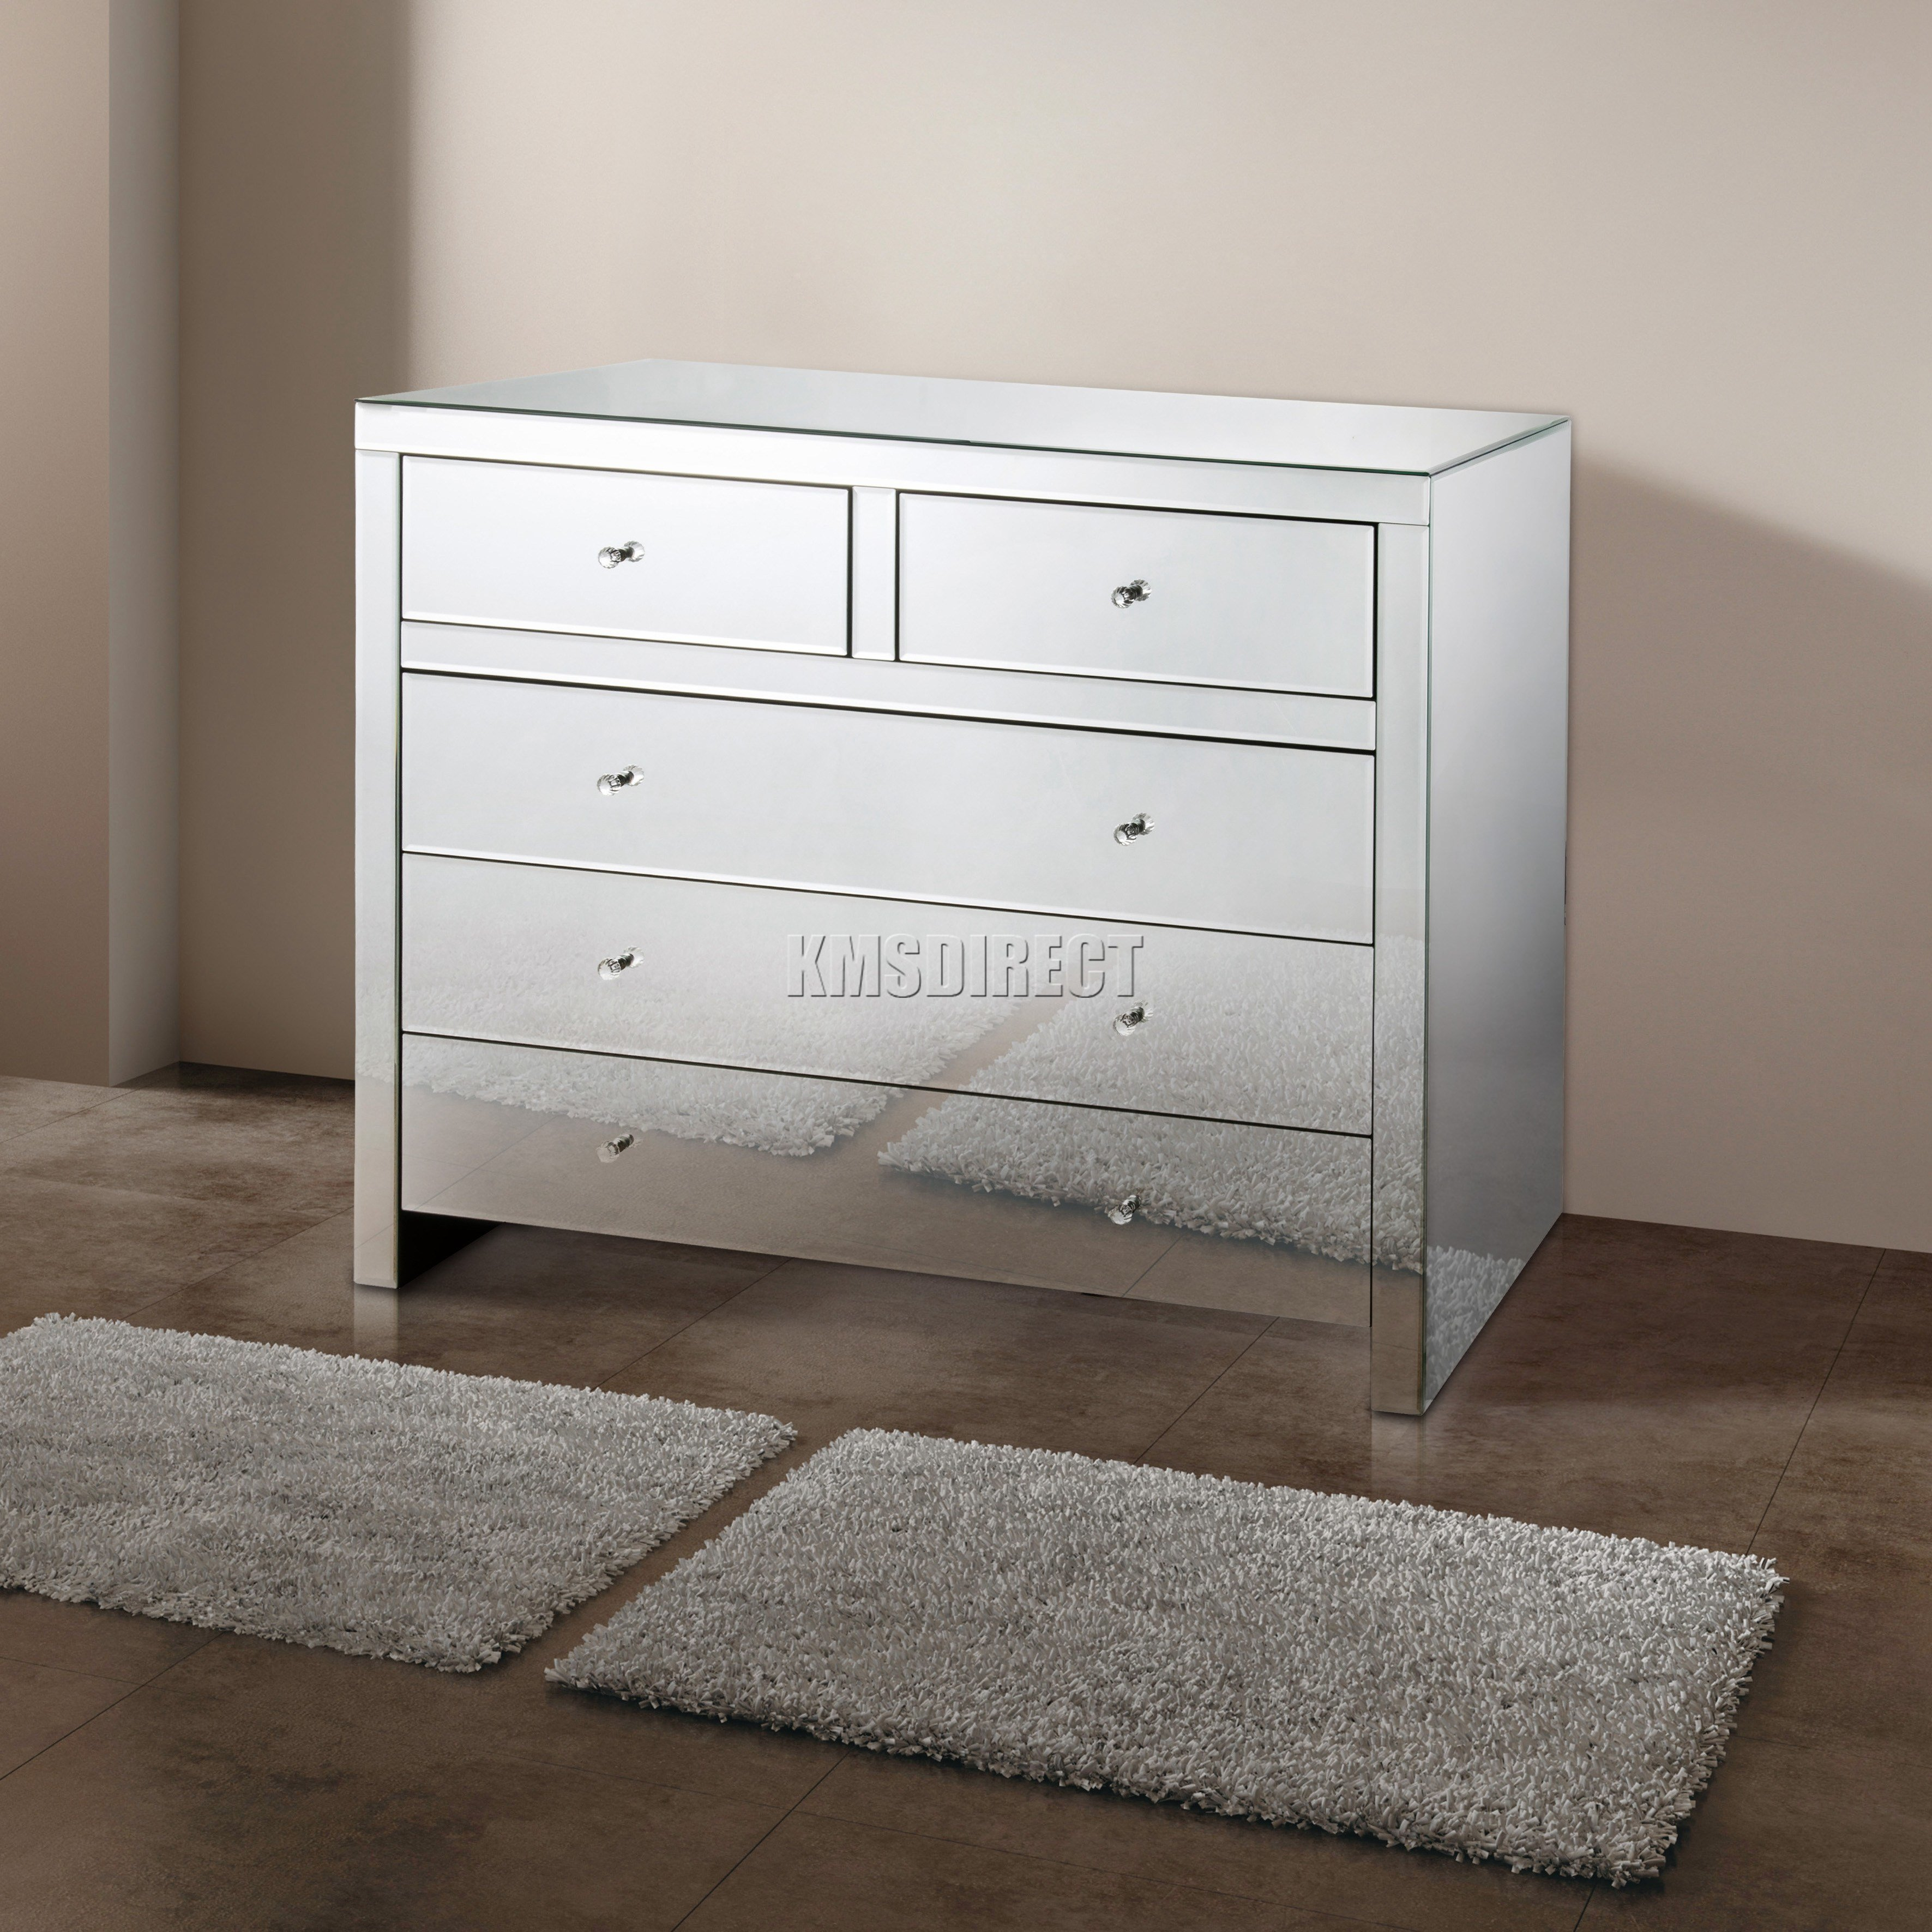 Best Foxhunter Mirrored Furniture Glass With Drawer Chest With Pictures